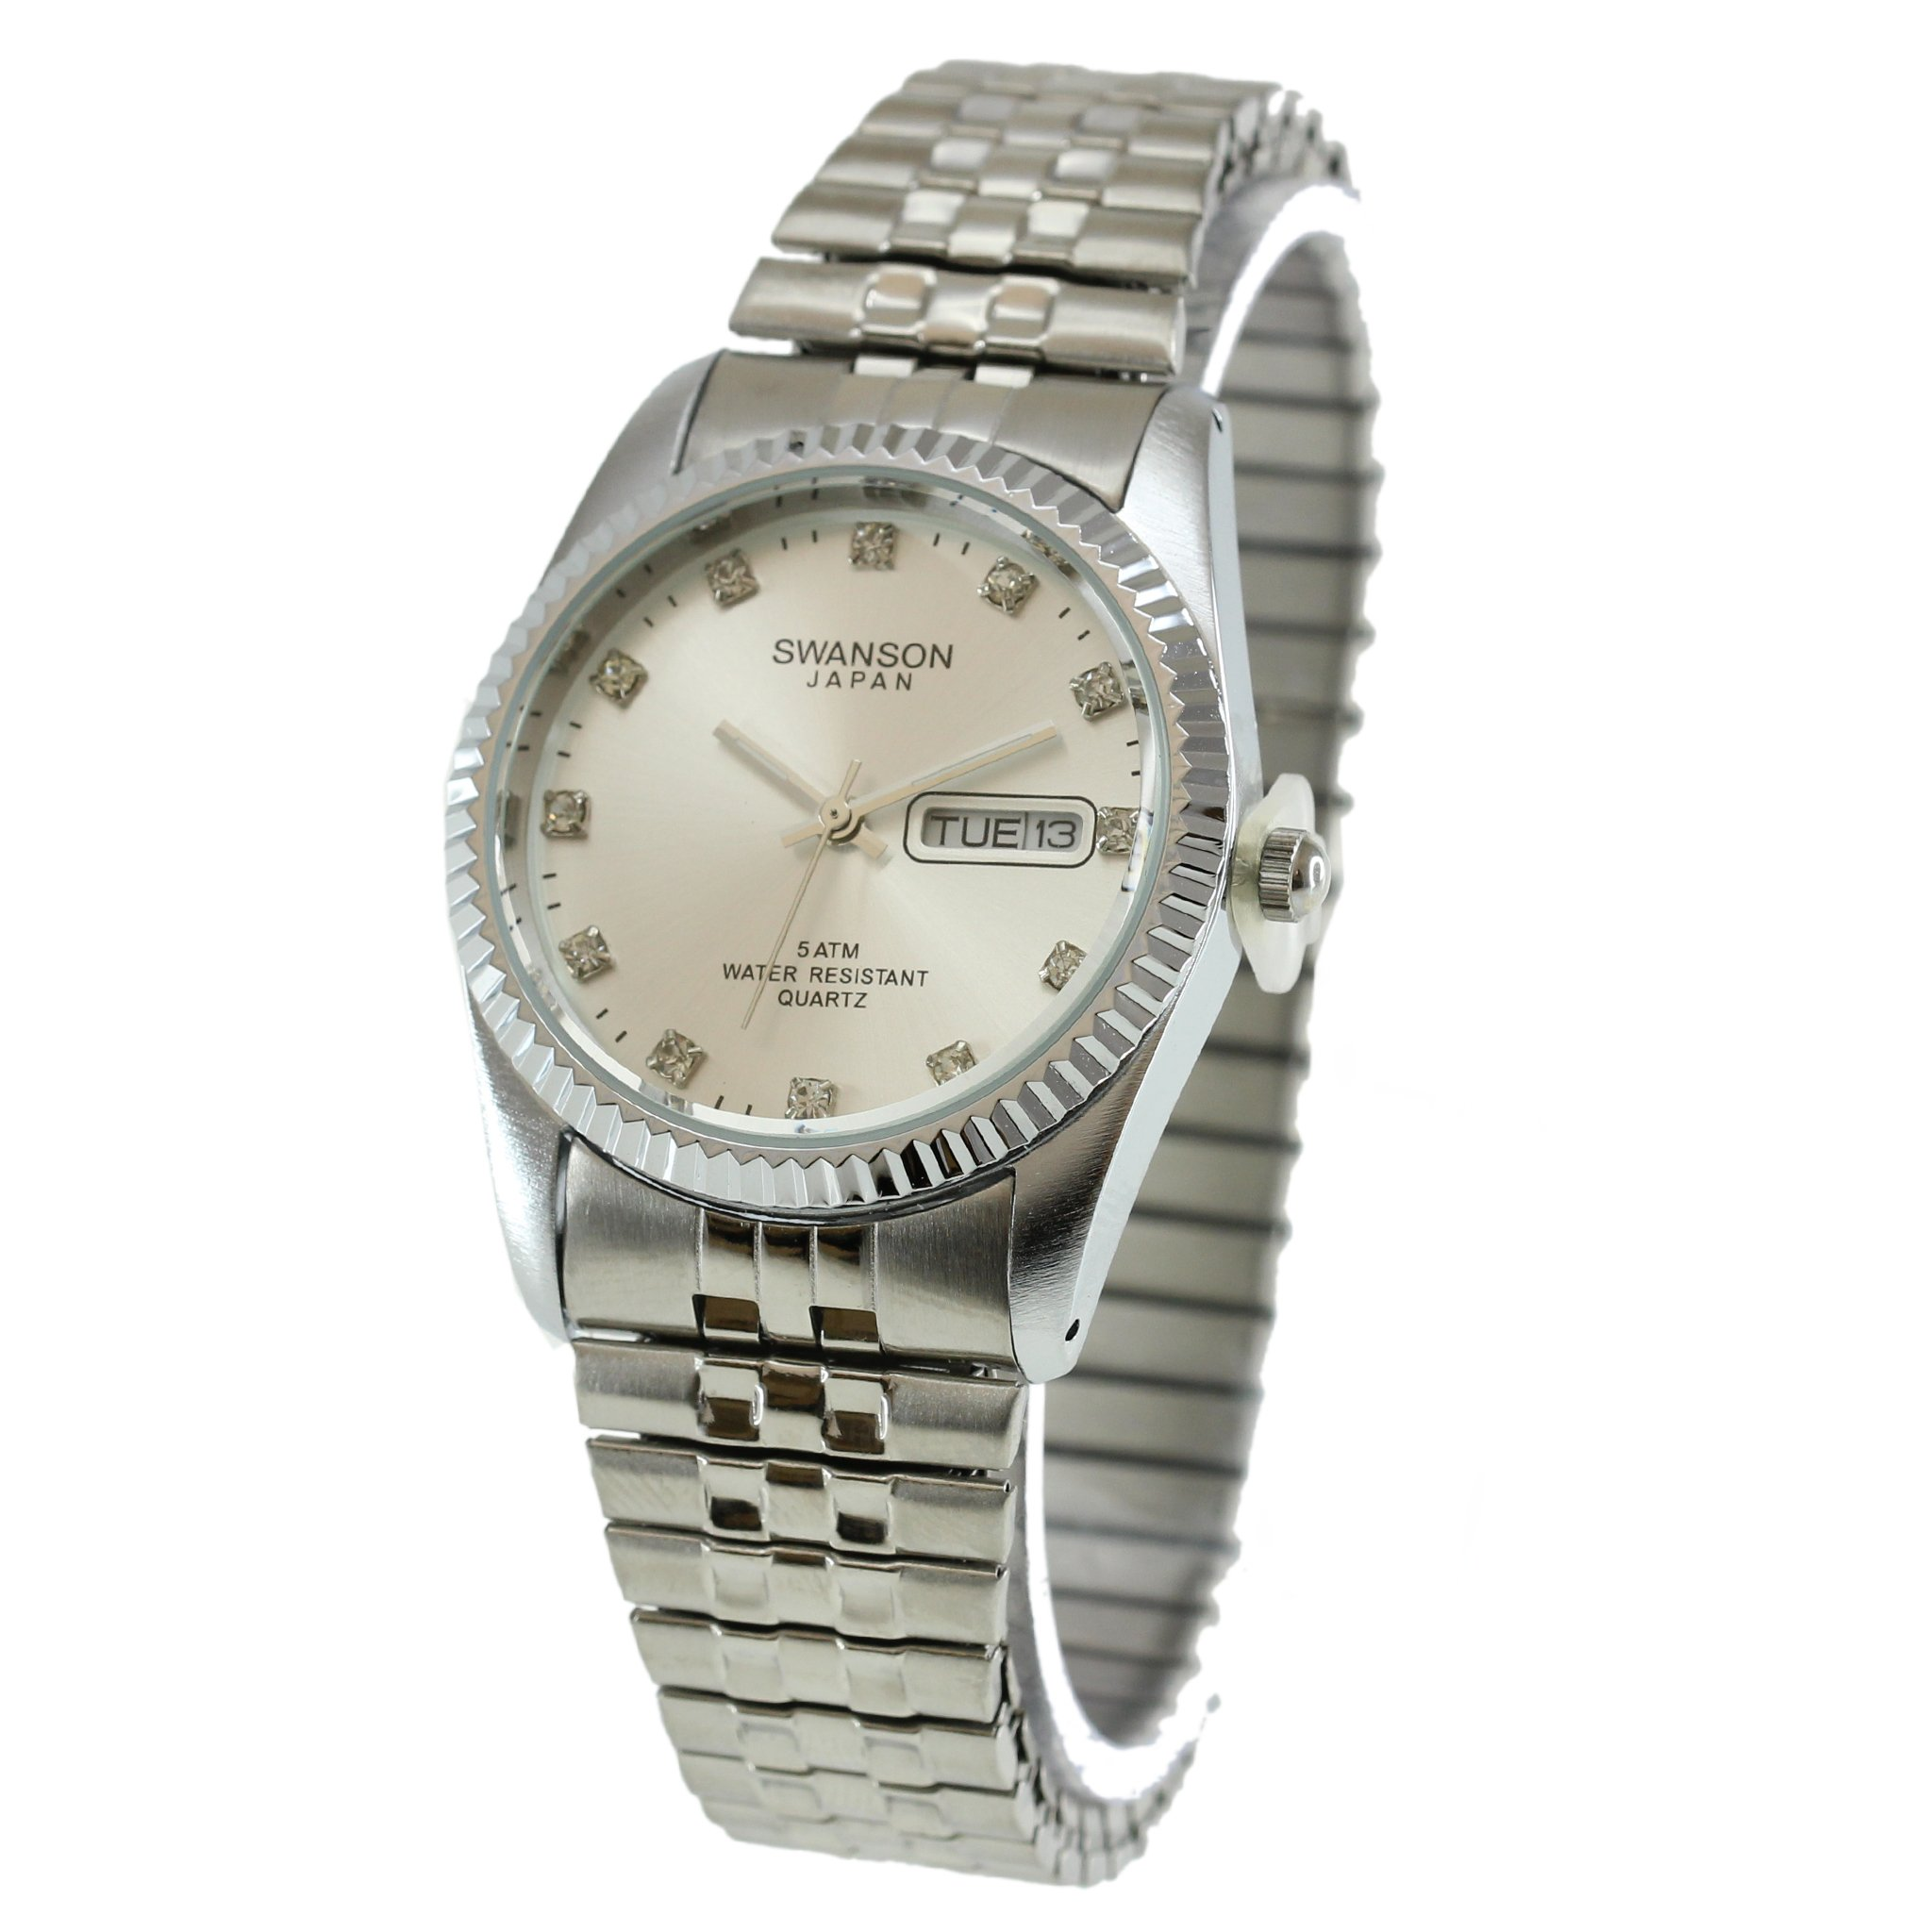 Swanson Japan Men's Silver Expansion Band Day-Date Smooth Silver Stone Dial Watch with Travel Case